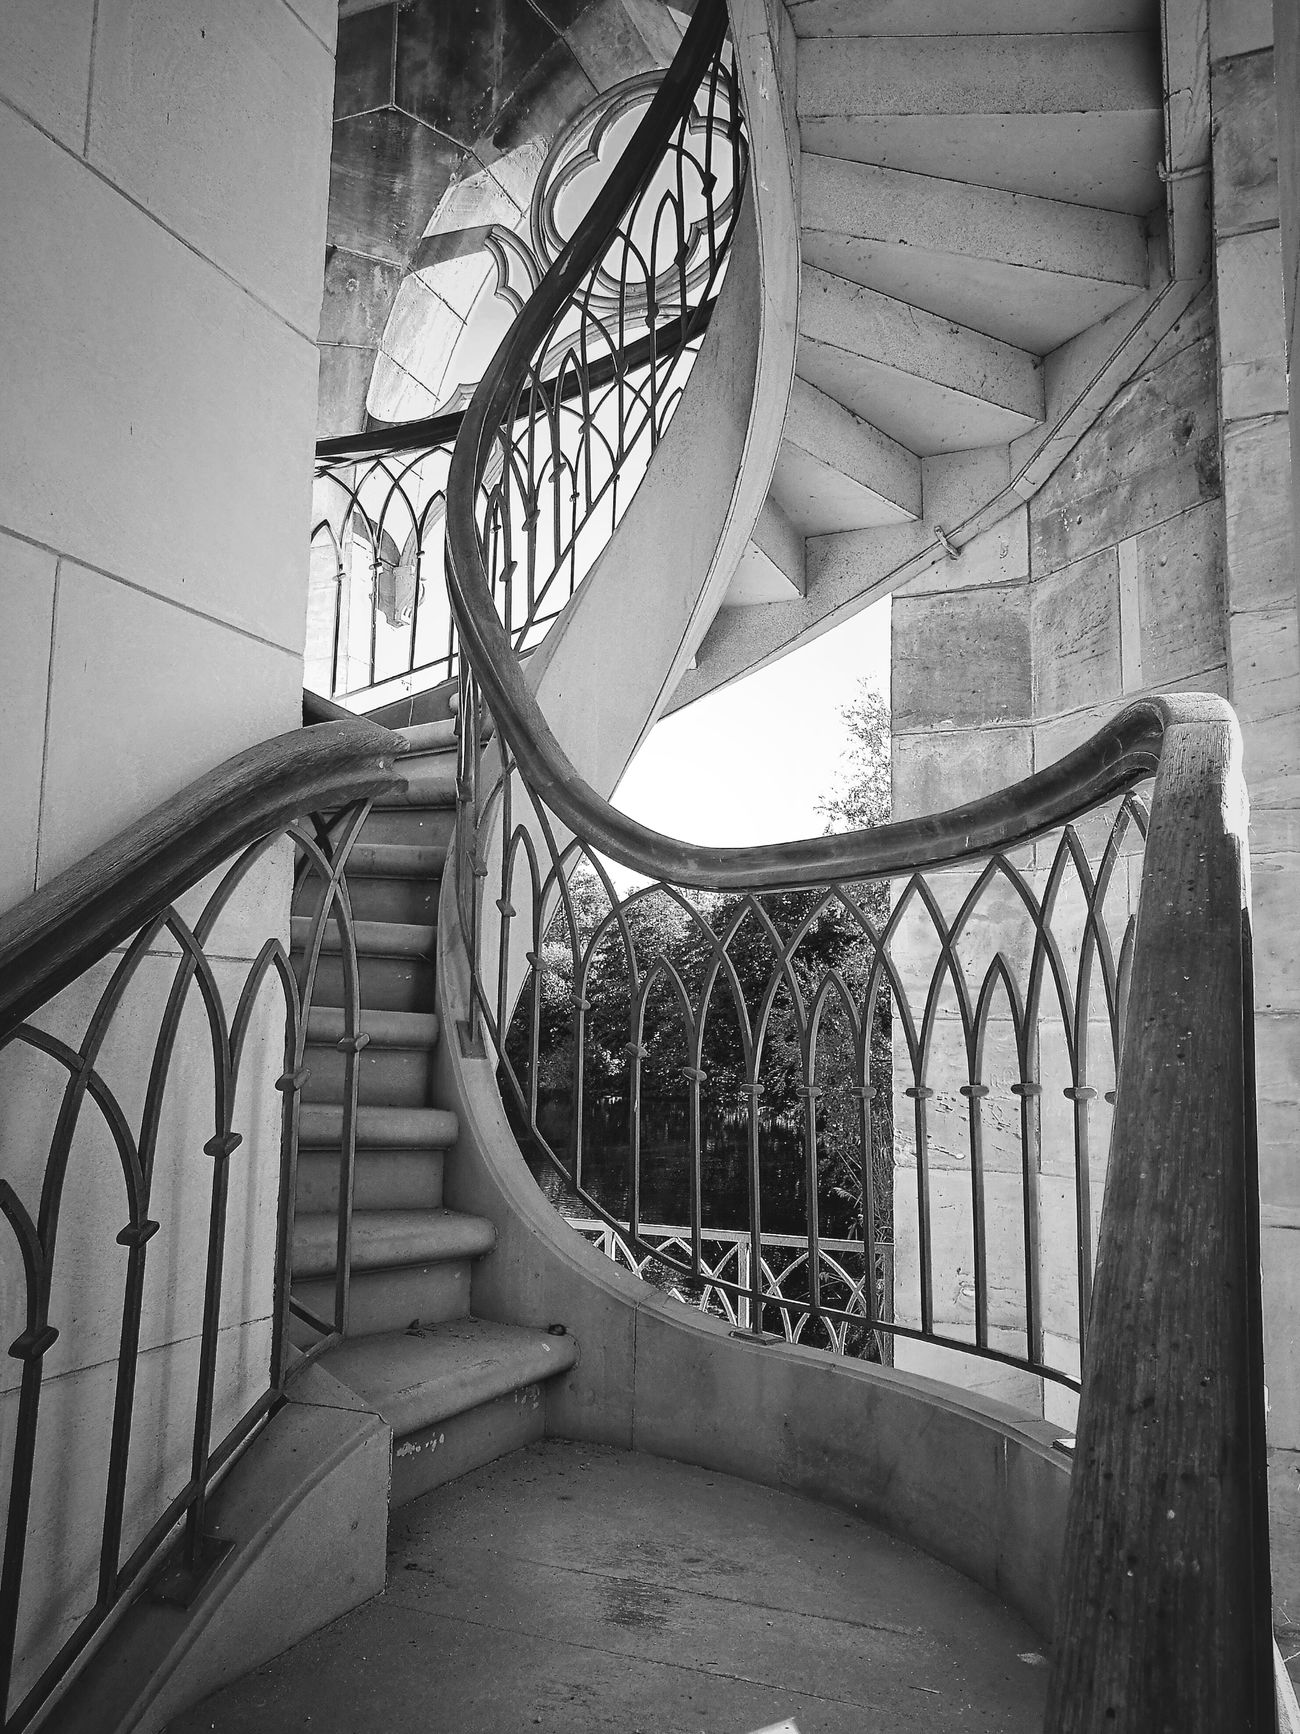 Treppenhaus. Built Structure Architecture Railing Steps Day Entrance Damaged Place Of Worship Arch Stairs Obsolete Sky No People King Of Prussia Potsdam Blackandwite Blancoynegro Black And White Photography